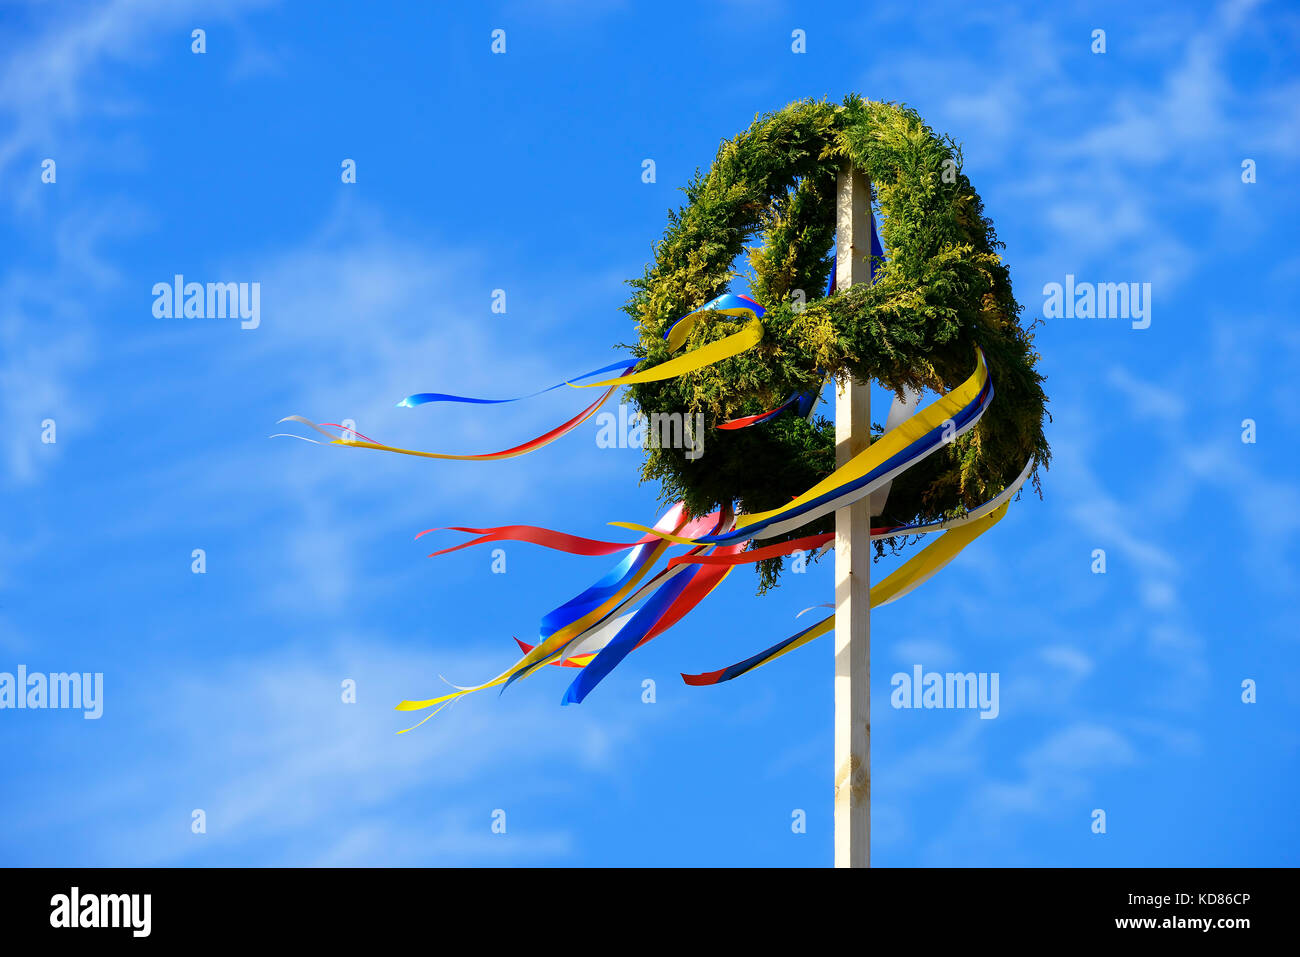 Topping-out wreath - Stock Image